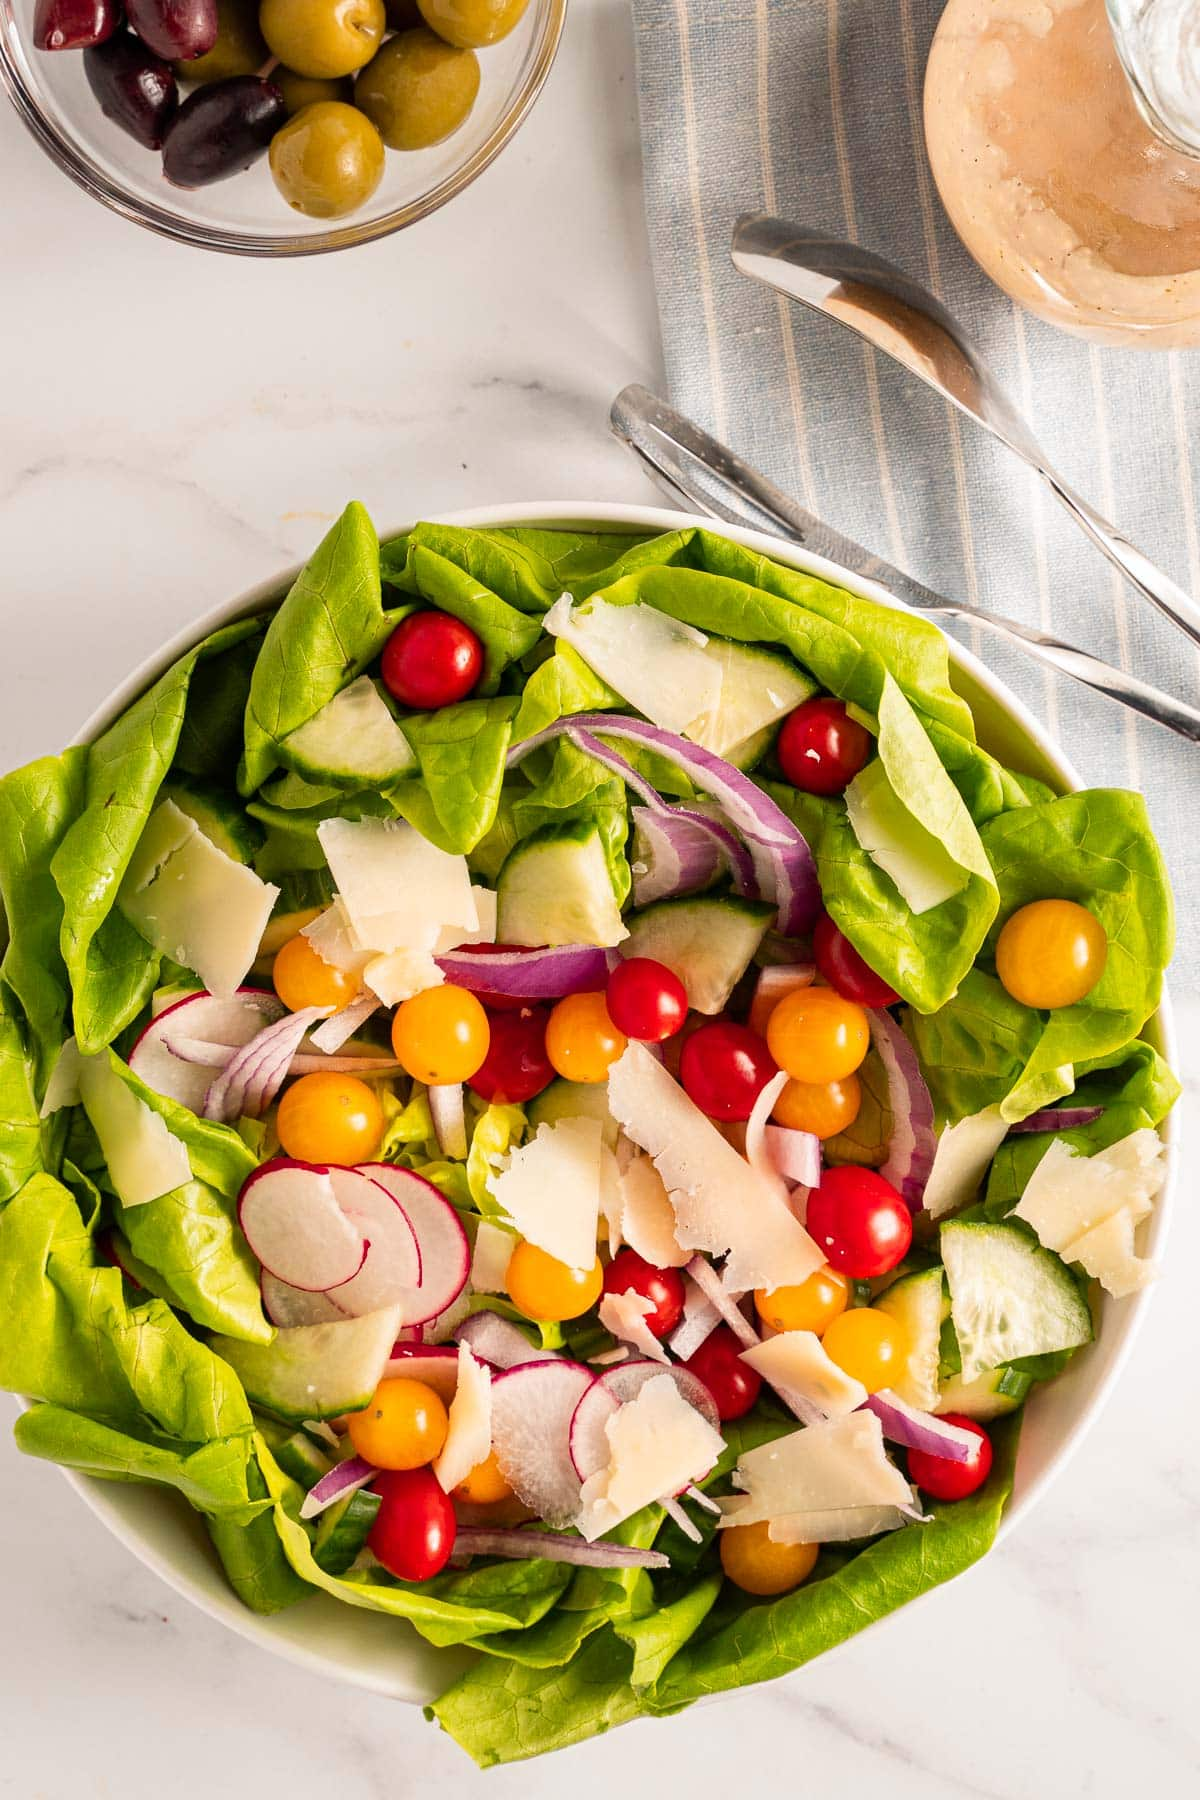 butter lettuce salad with cherry tomatoes, cucumbers, radishes, red onion, cheese in white bowl. with olives and balsamic dressing